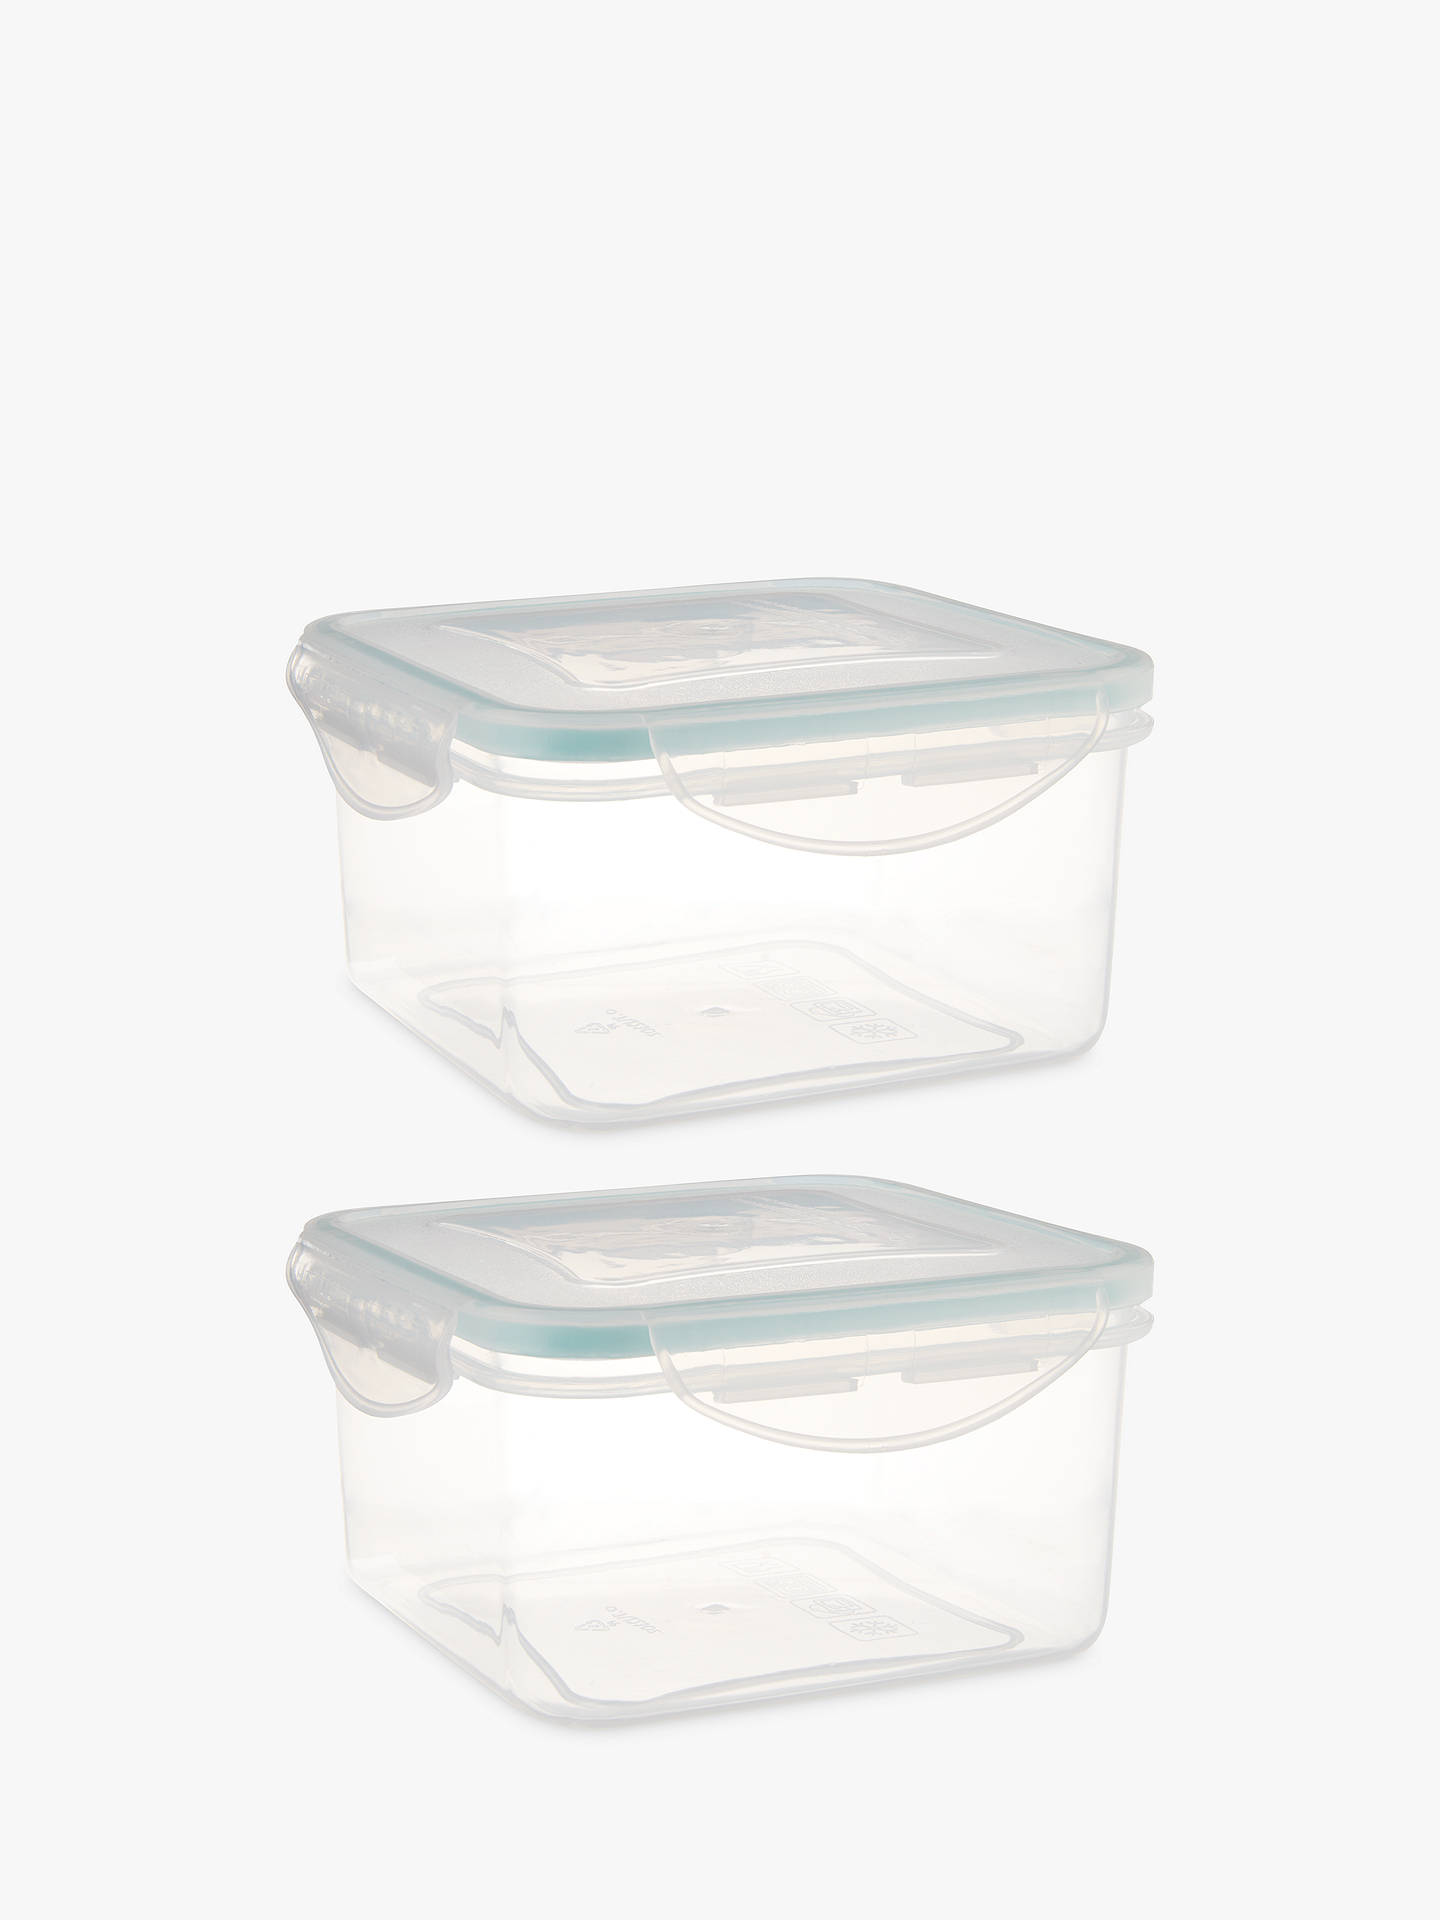 Buy John Lewis & Partners Polypropylene Storage Containers, Set of 2, Clear, 700ml Online at johnlewis.com